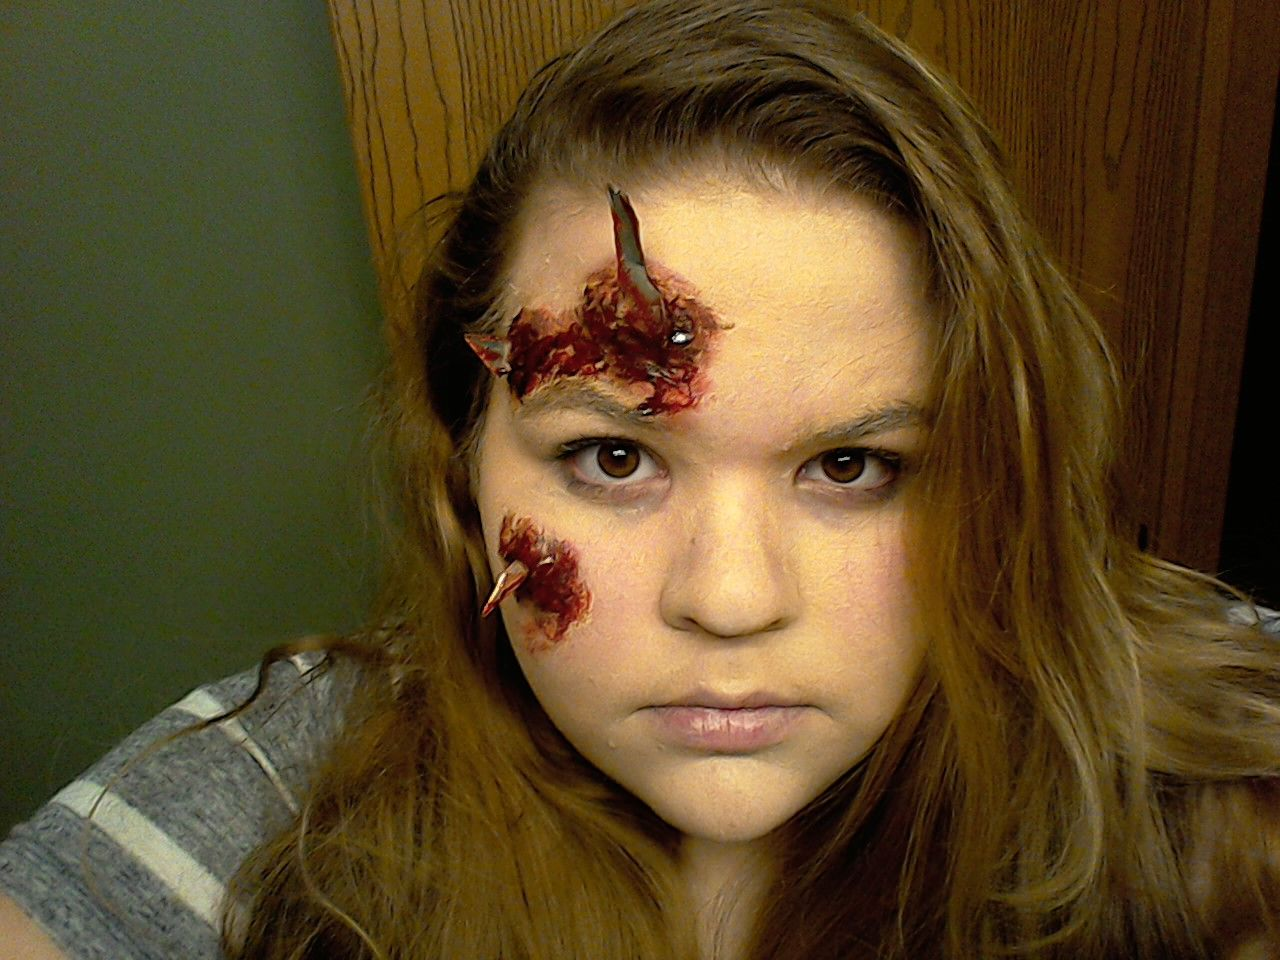 Shattered glass special fx makeup